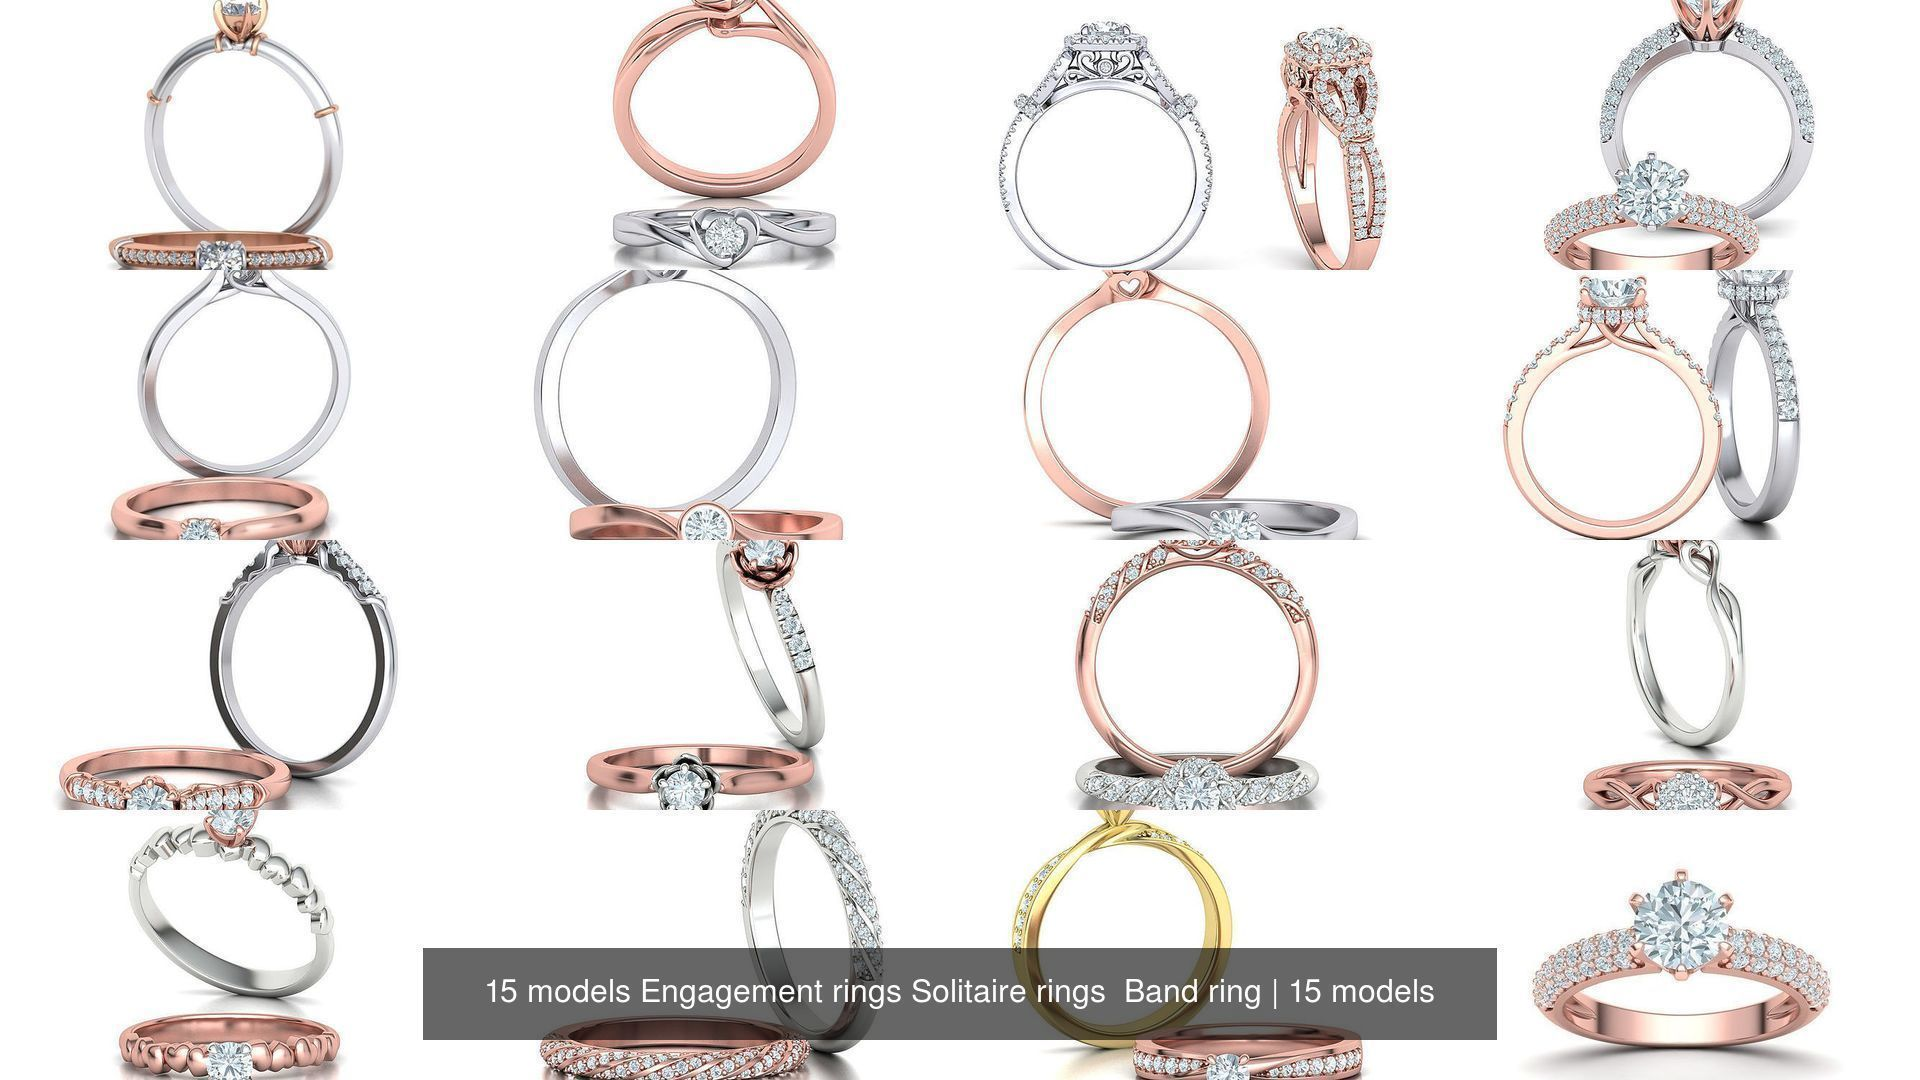 15 models Engagement rings Solitaire rings  Band ring